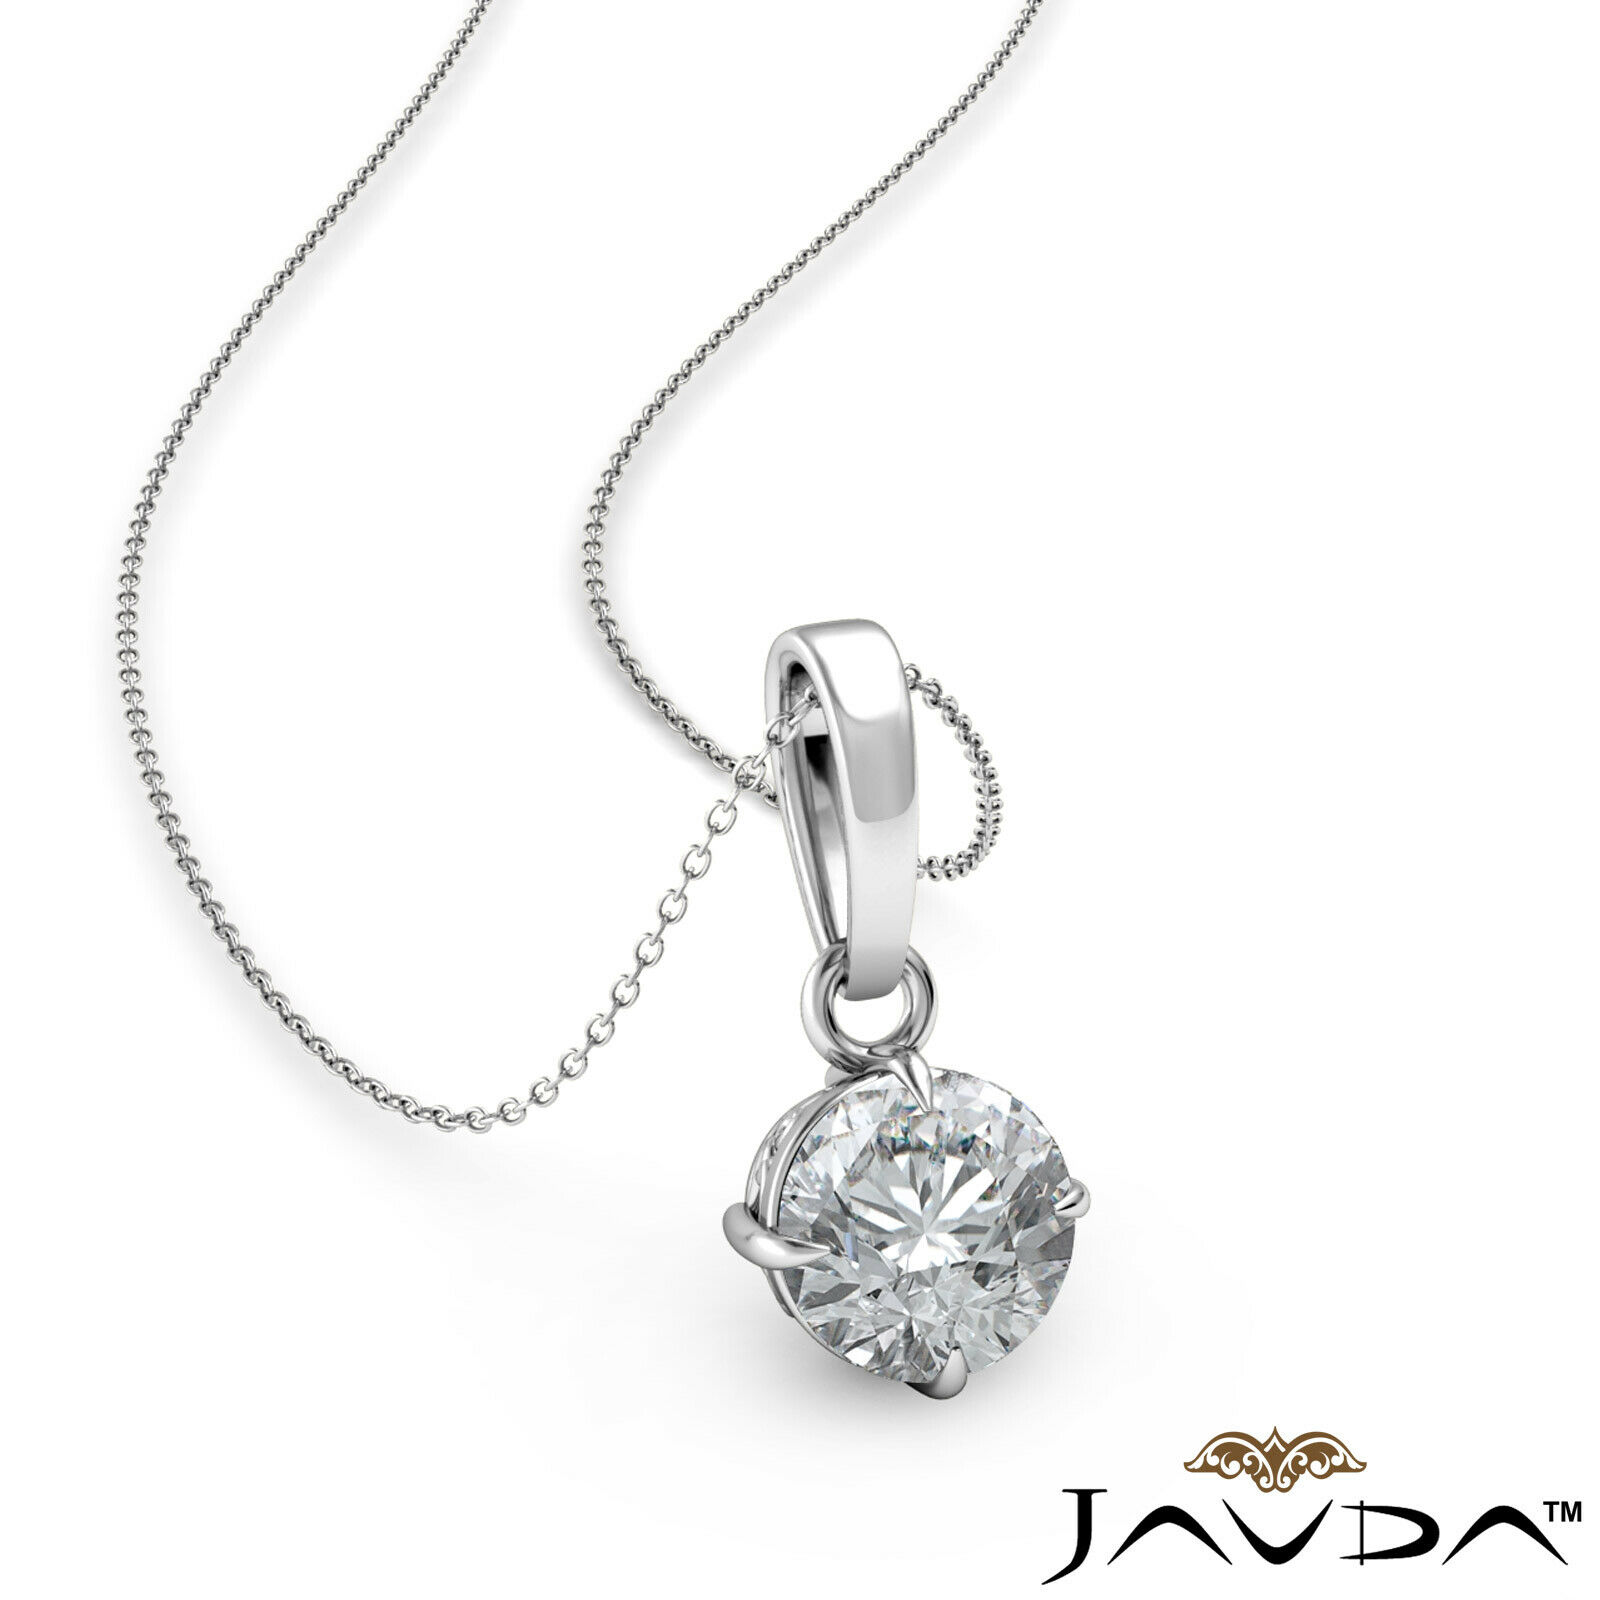 Solitaire Round Real Diamond Engagement 4 Claw Prong Pendant Necklace 0.24ctw.